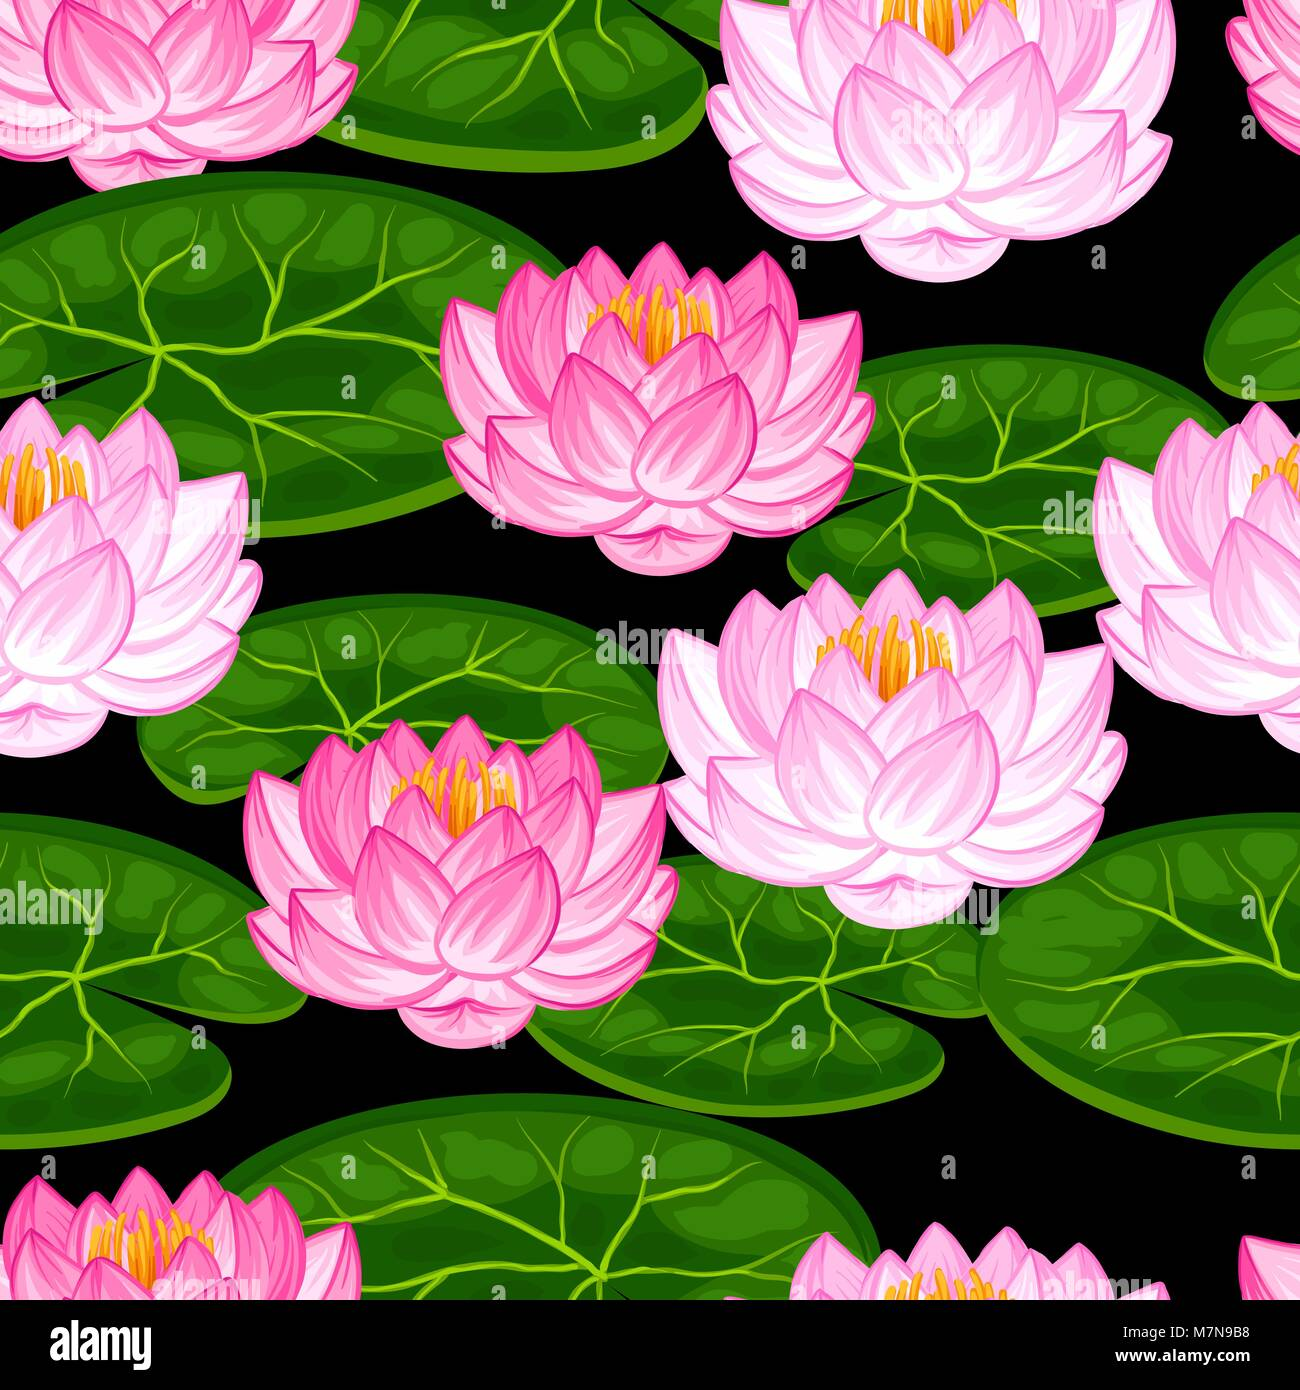 Natural seamless pattern with lotus flowers and leaves background natural seamless pattern with lotus flowers and leaves background made without clipping mask easy to use for backdrop textile wrapping paper izmirmasajfo